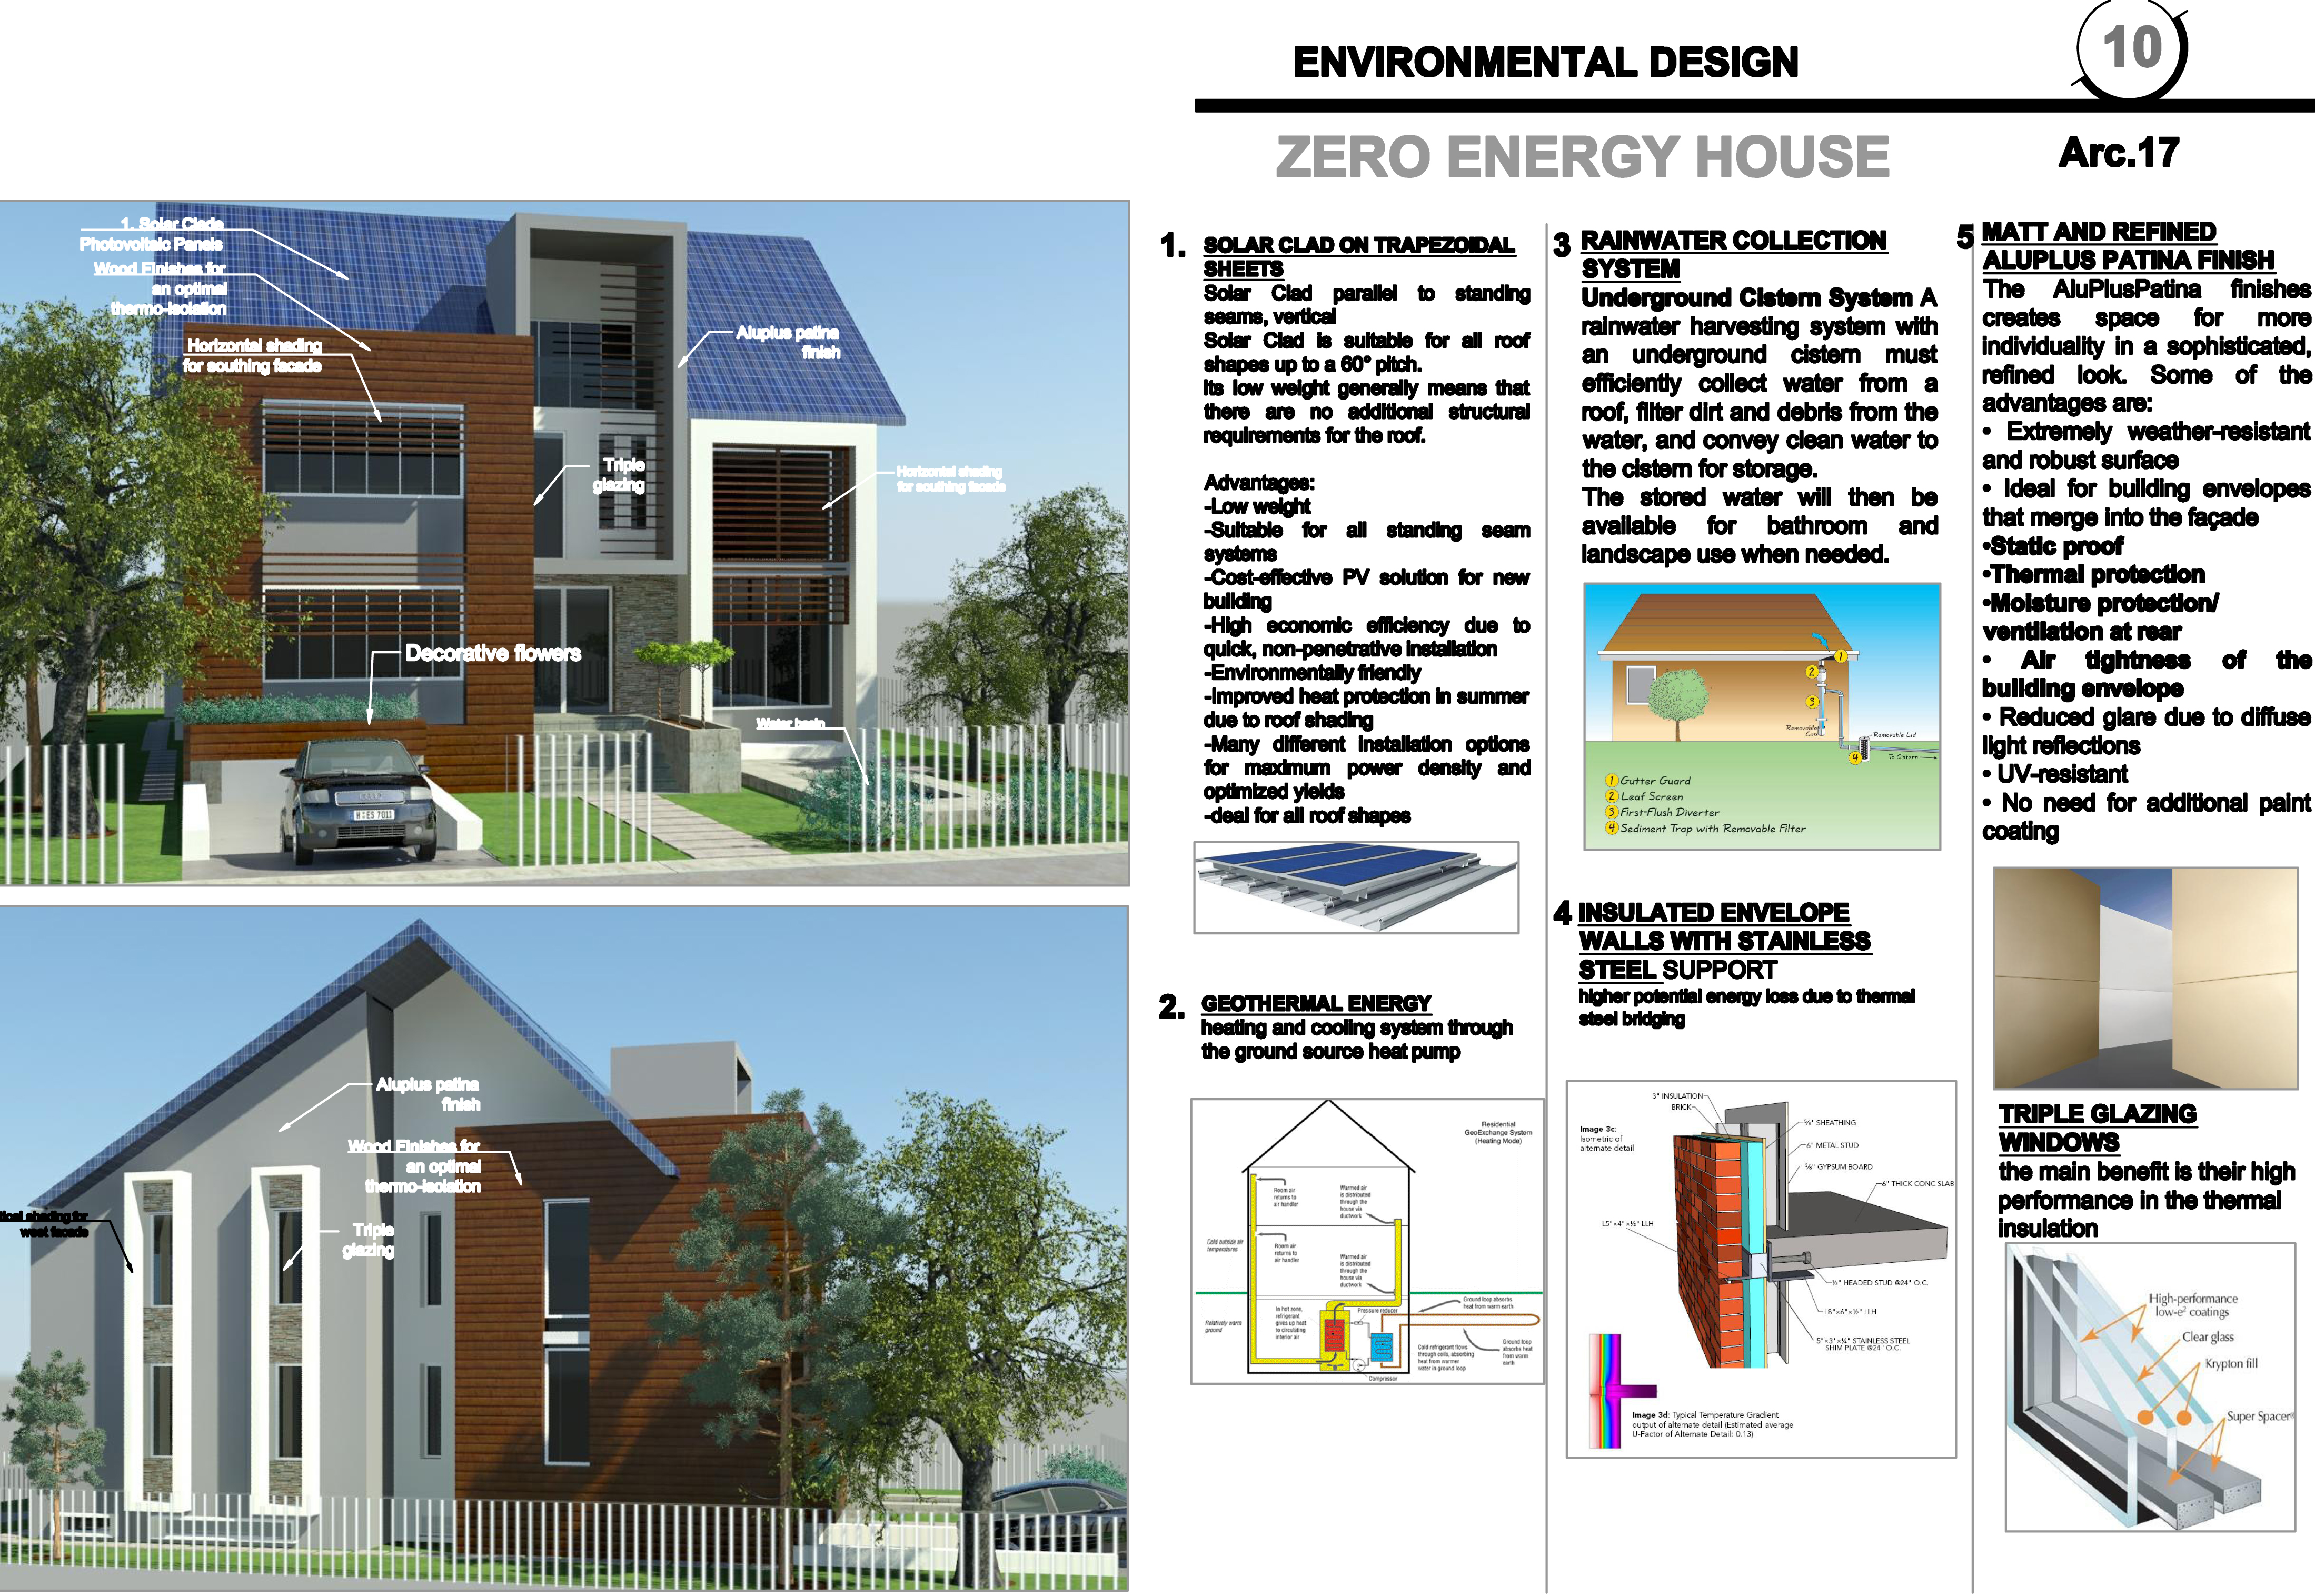 Home design project designed by vjosa shehu zero energy for Zero energy house design